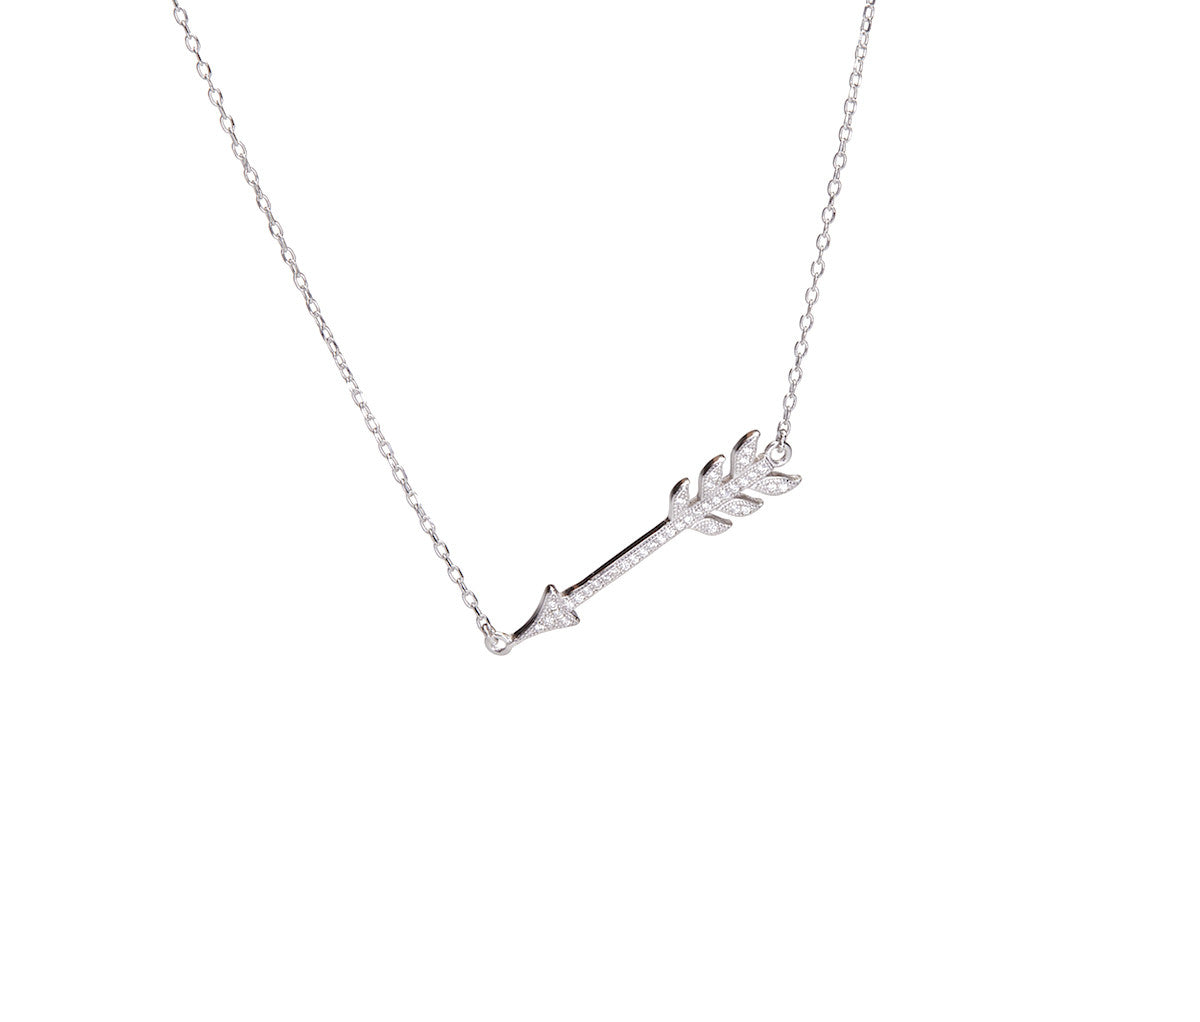 Silver Necklace With Long Arrow Pendant